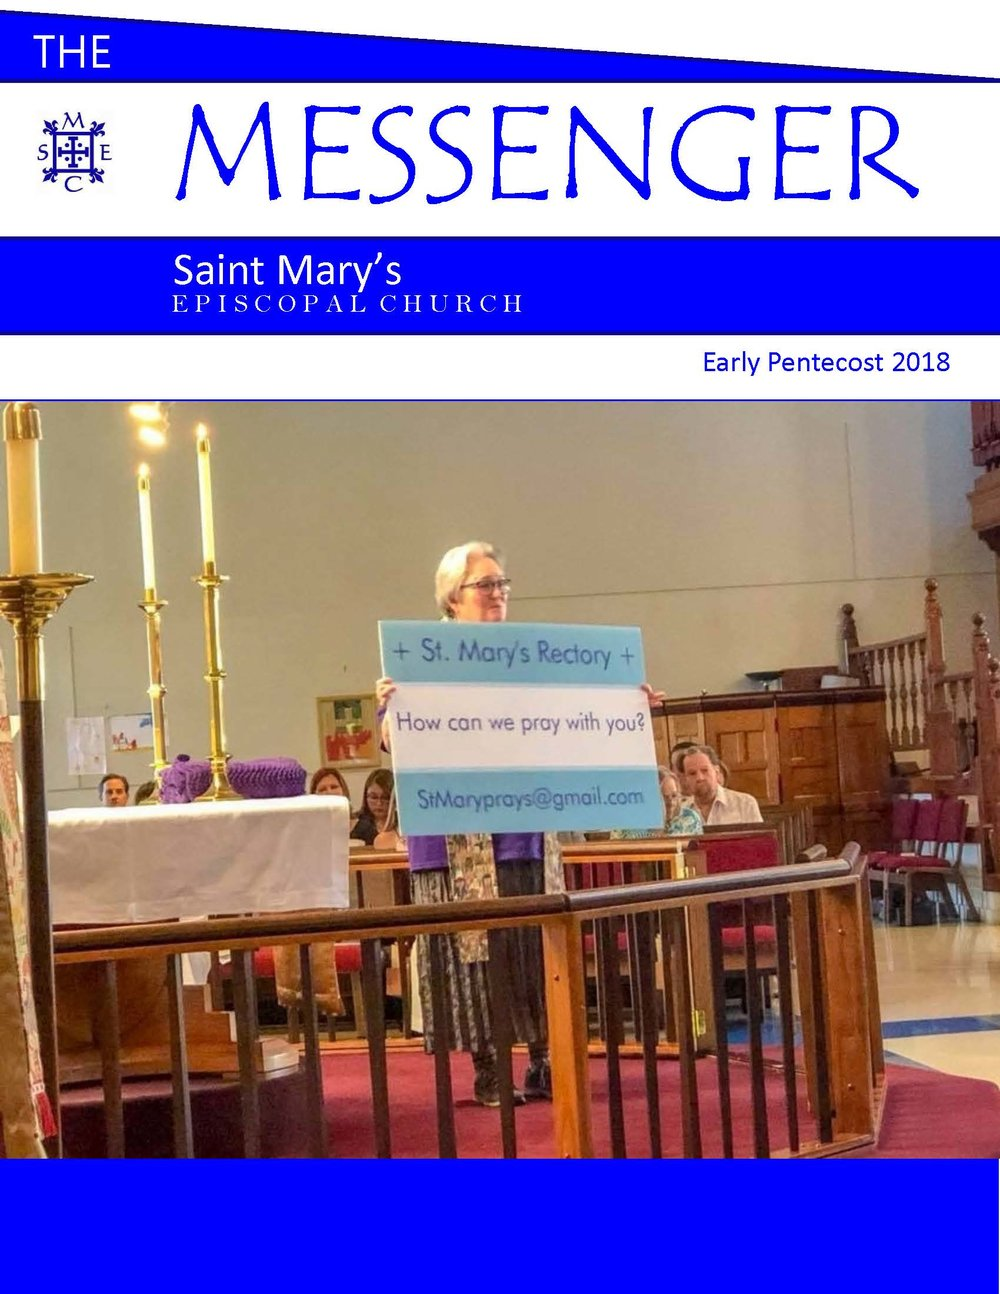 Messenger Summer 2018 Cover.jpg